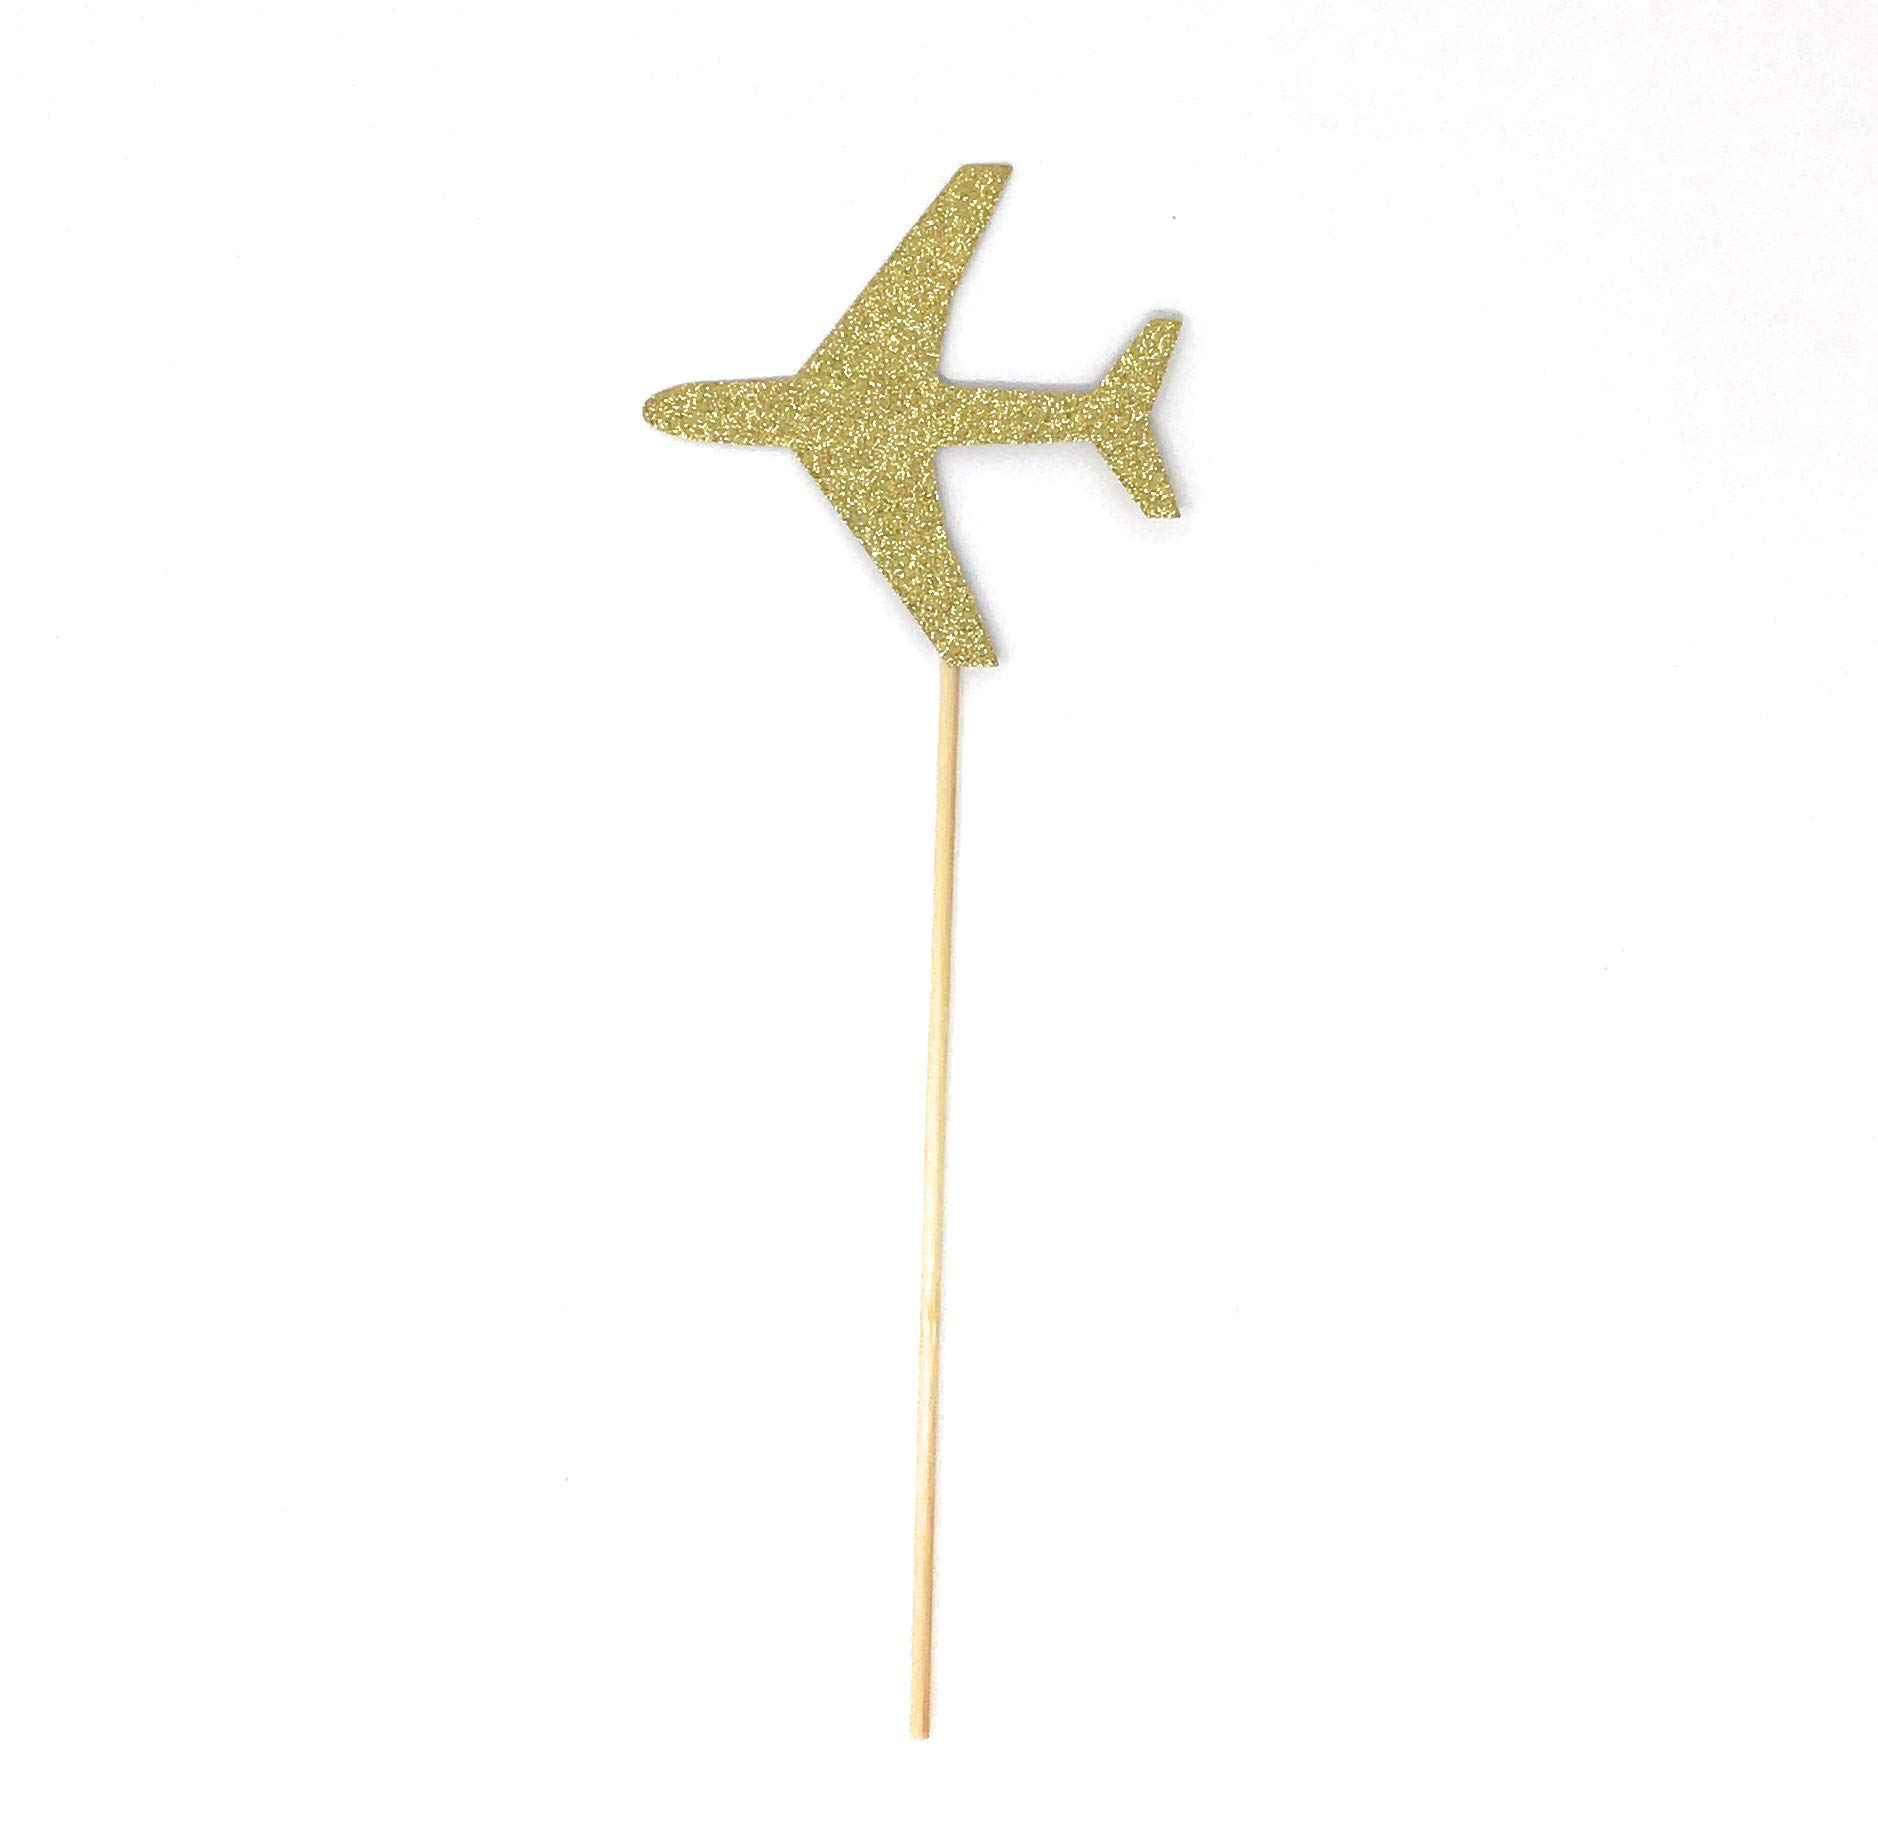 PaperGala Airplane Double Sided Centerpiece Sticks Set of 8 Real Glitter (Gold)